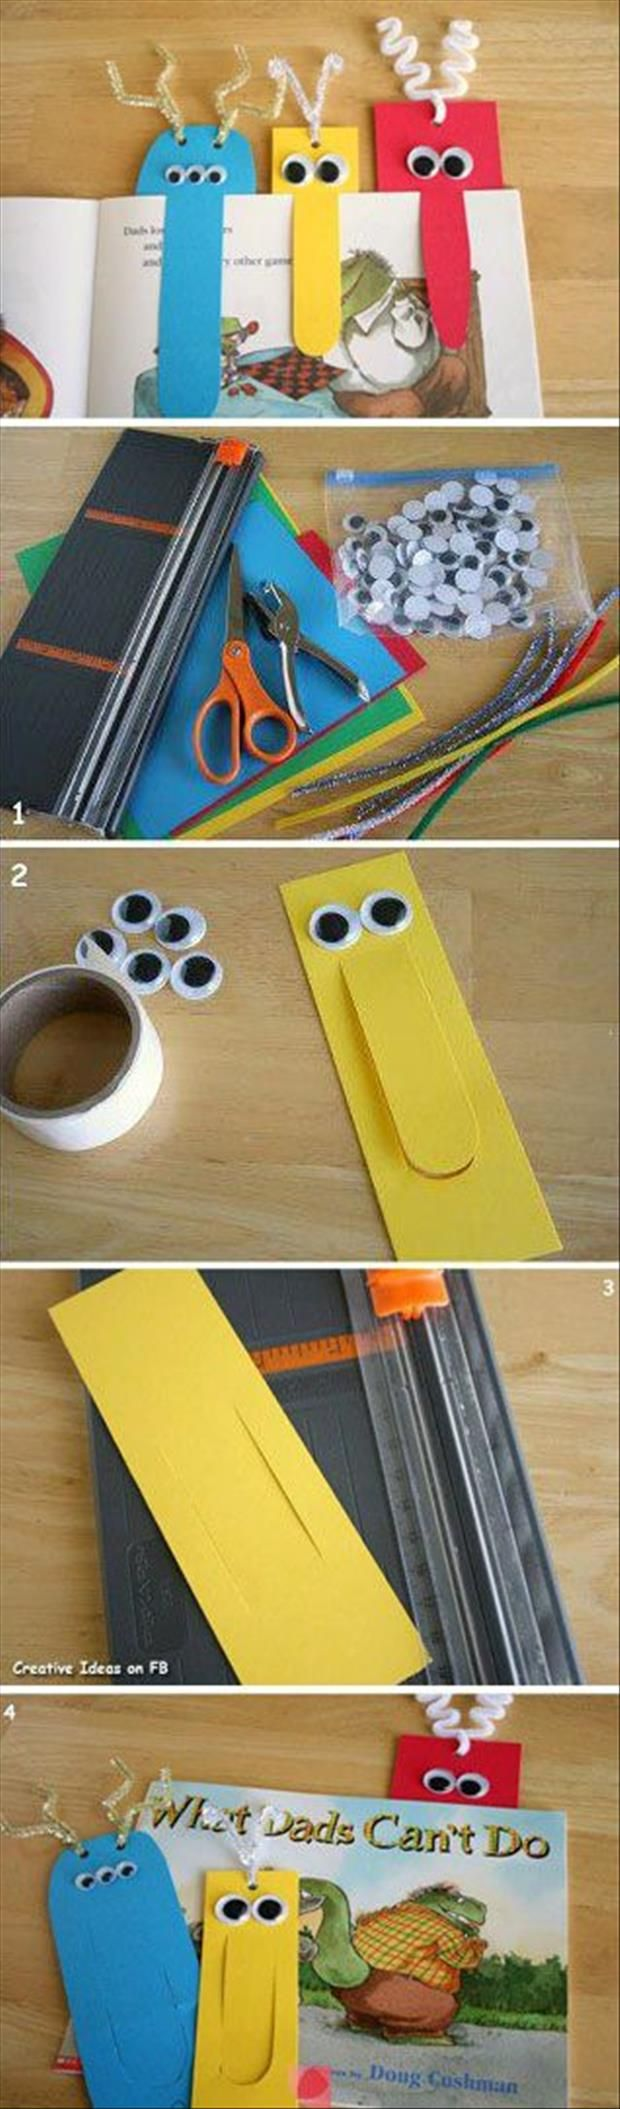 8 Easy Ideas to DIY Bookmarks